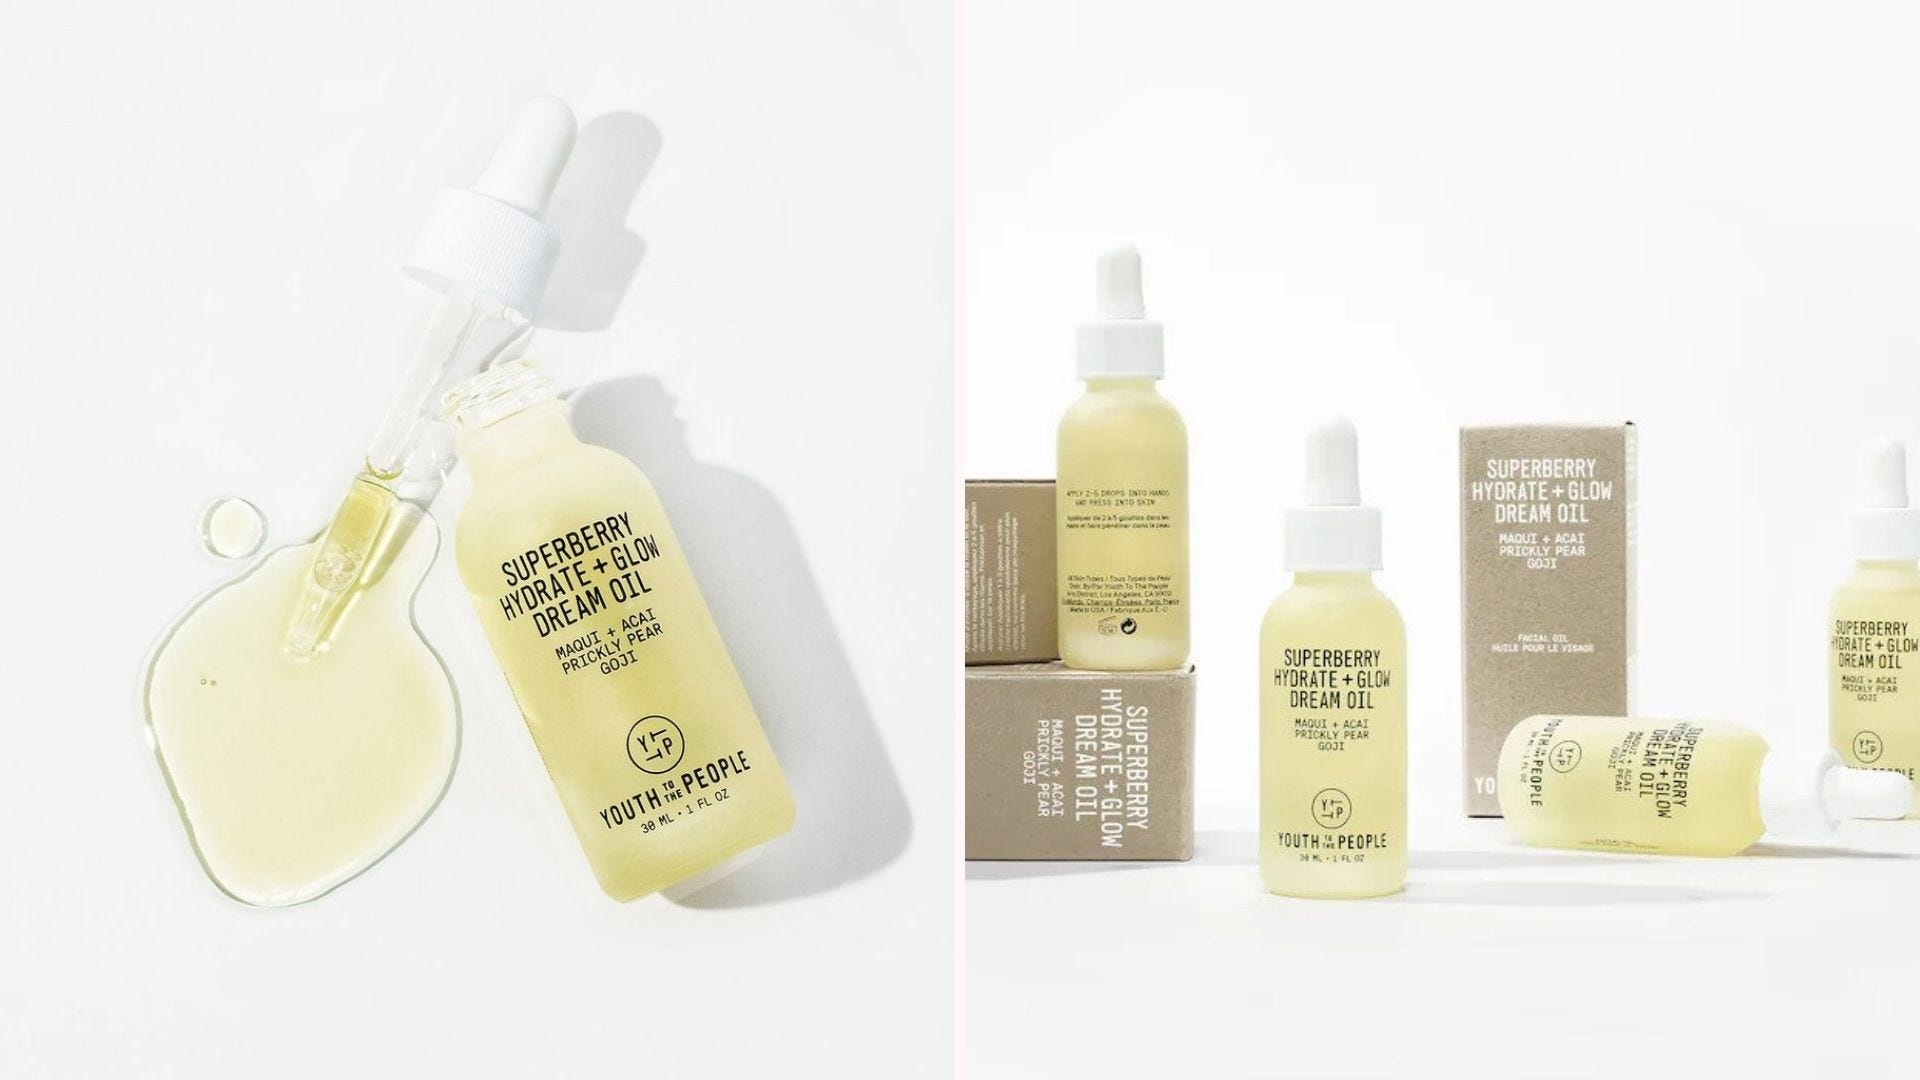 Bottles of pale yellow face oil next to their brown boxes